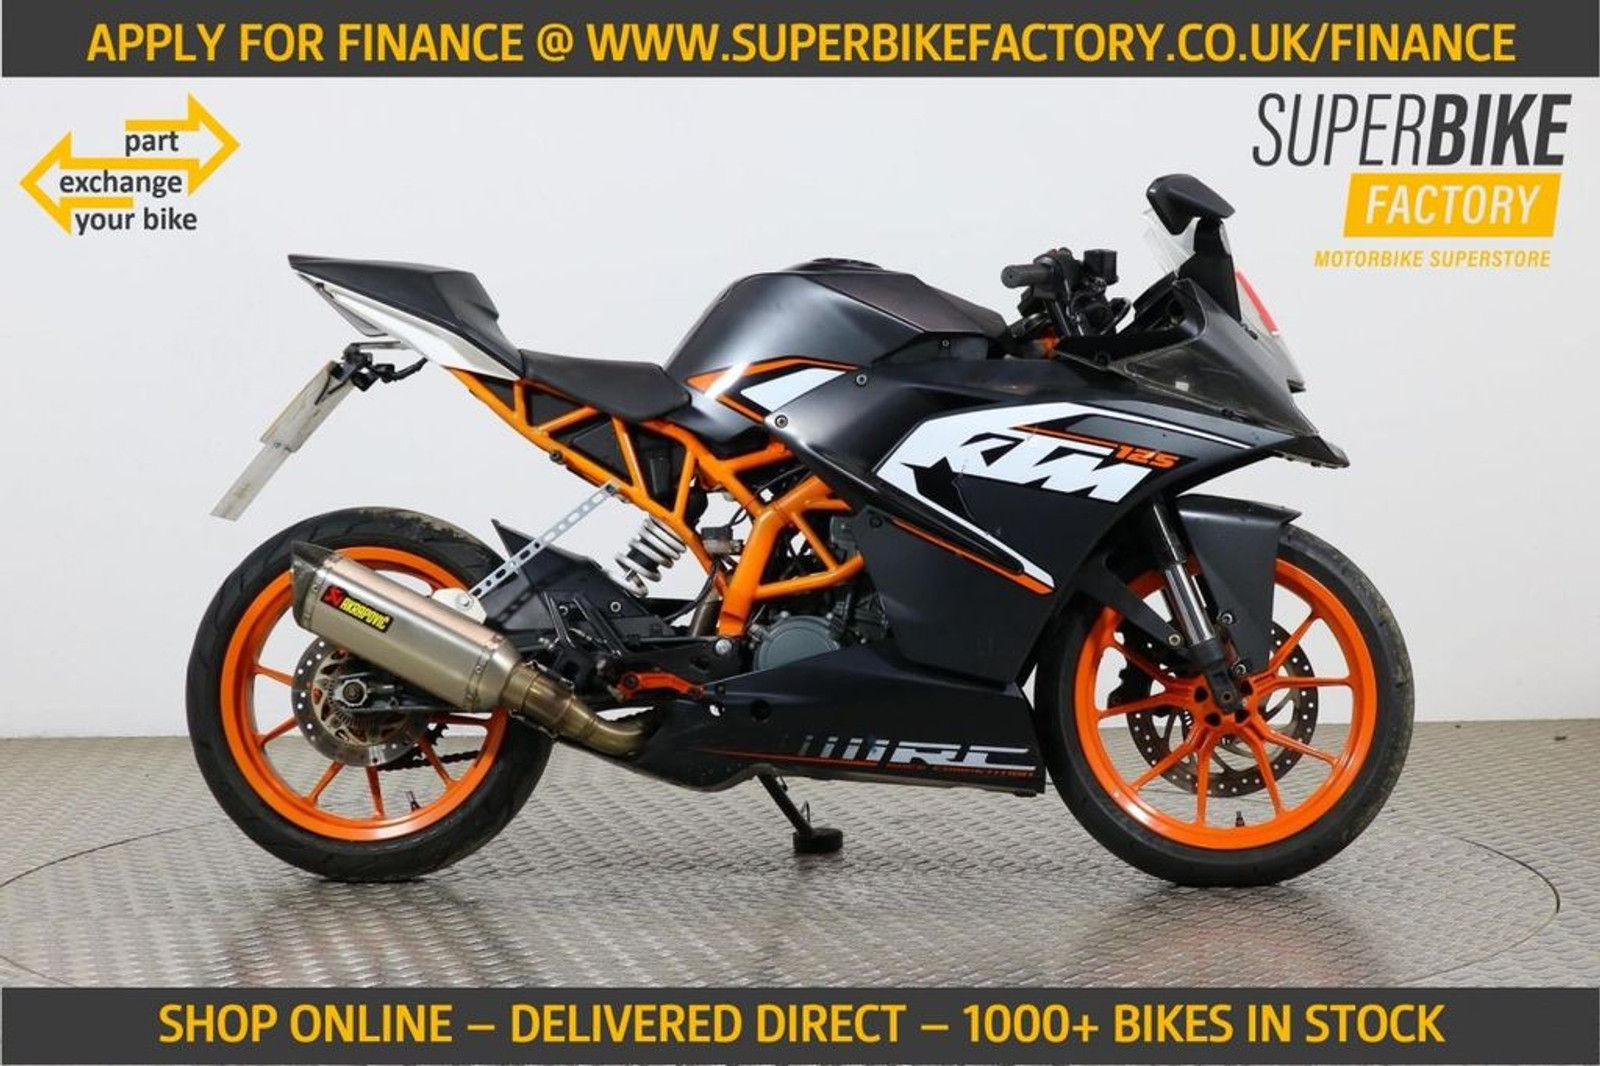 2014 Ktm Rc 125 Black With 6446 Miles Used Motorbikes Dealer Macclesfield Cheshire The Superbike Factory